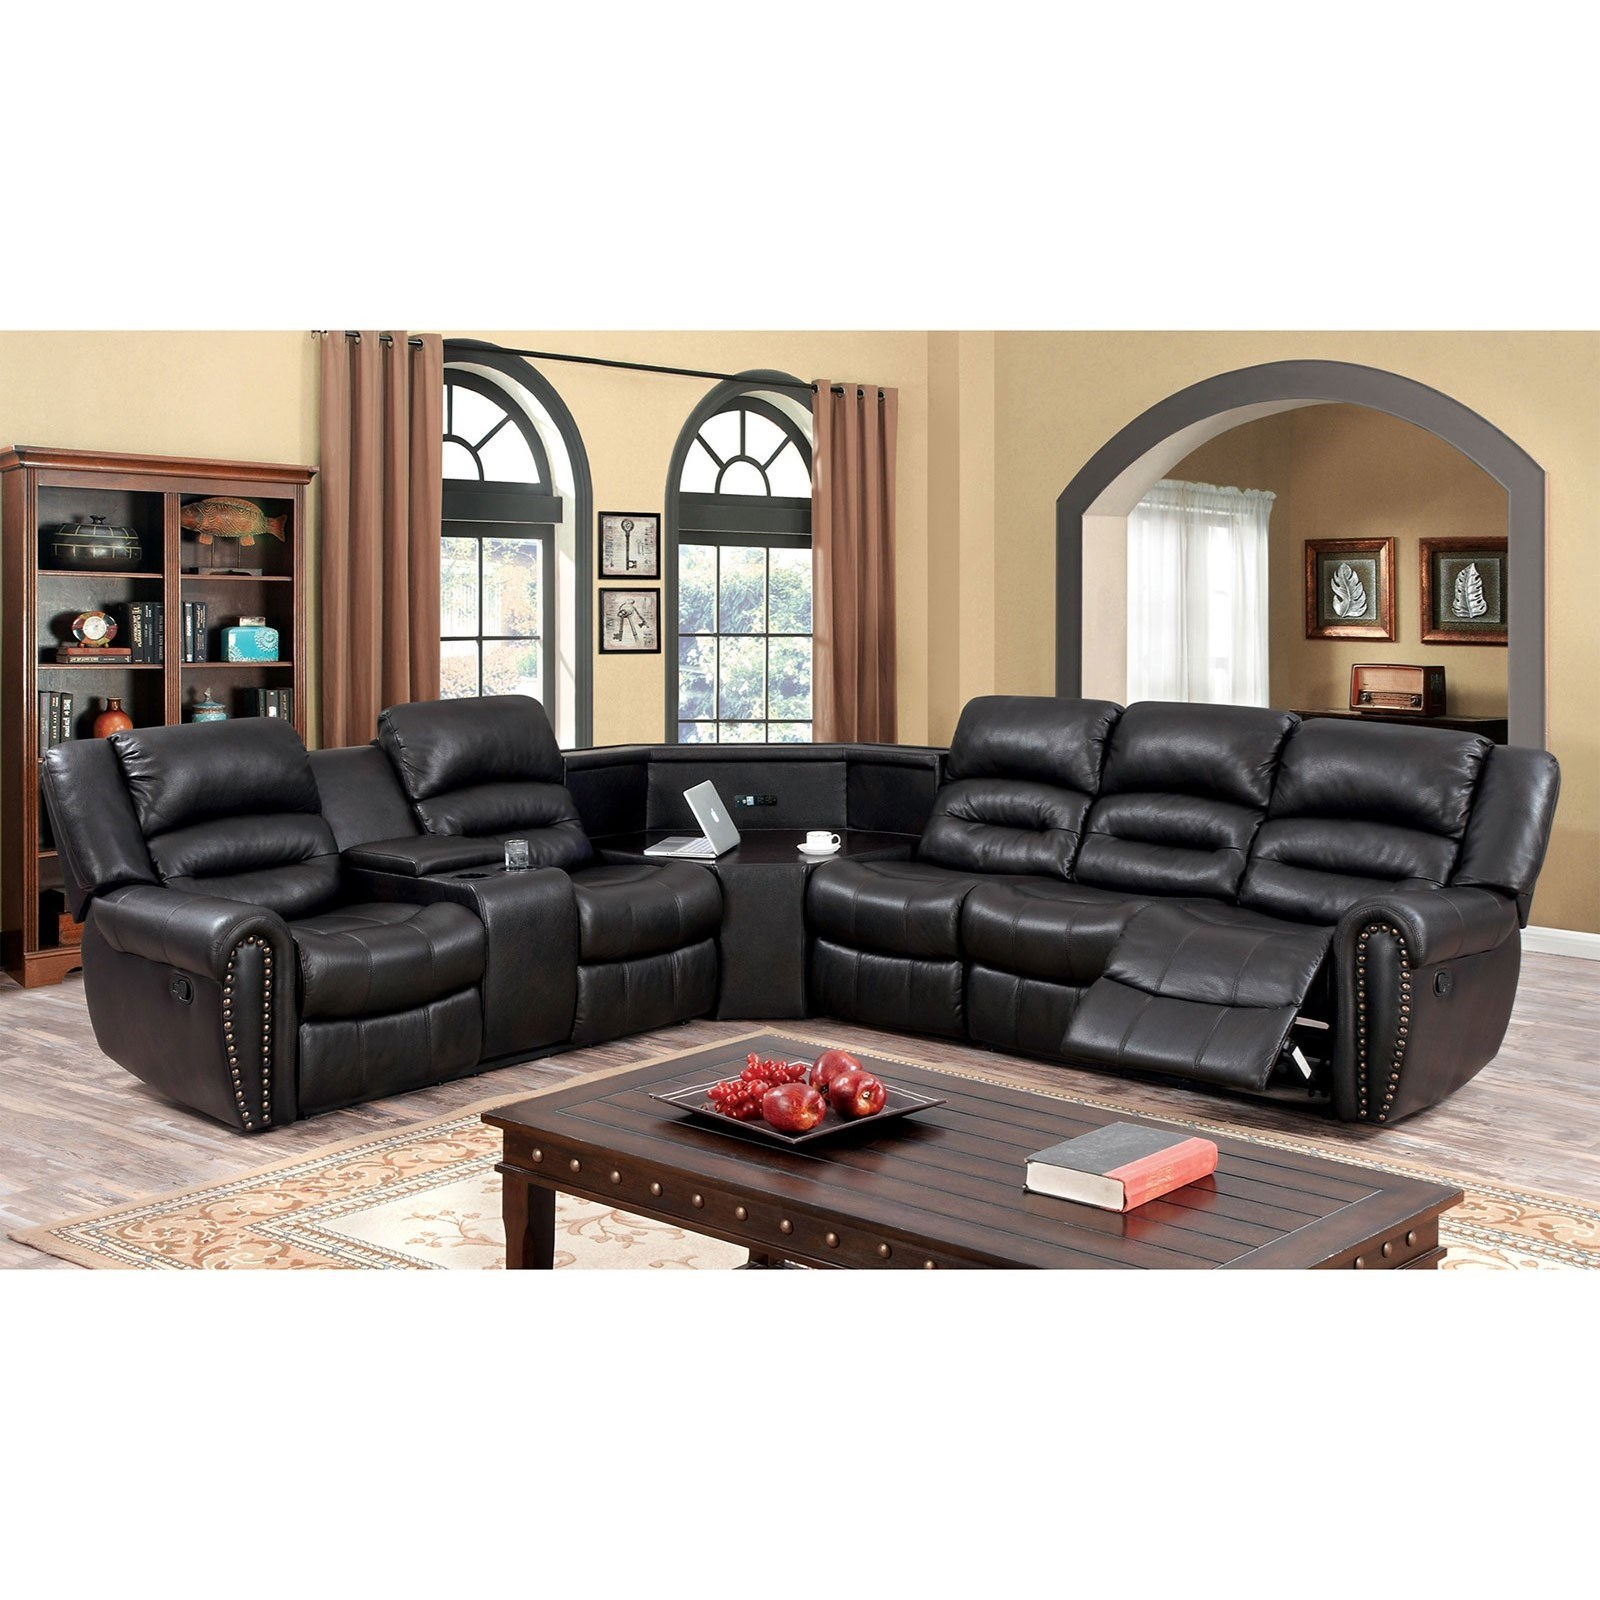 Wales 5 Seat Faux Leather Reclining Sectional Sofa with Nailheads and AC &  USB Charging Ports by Furniture of America at Rooms for Less